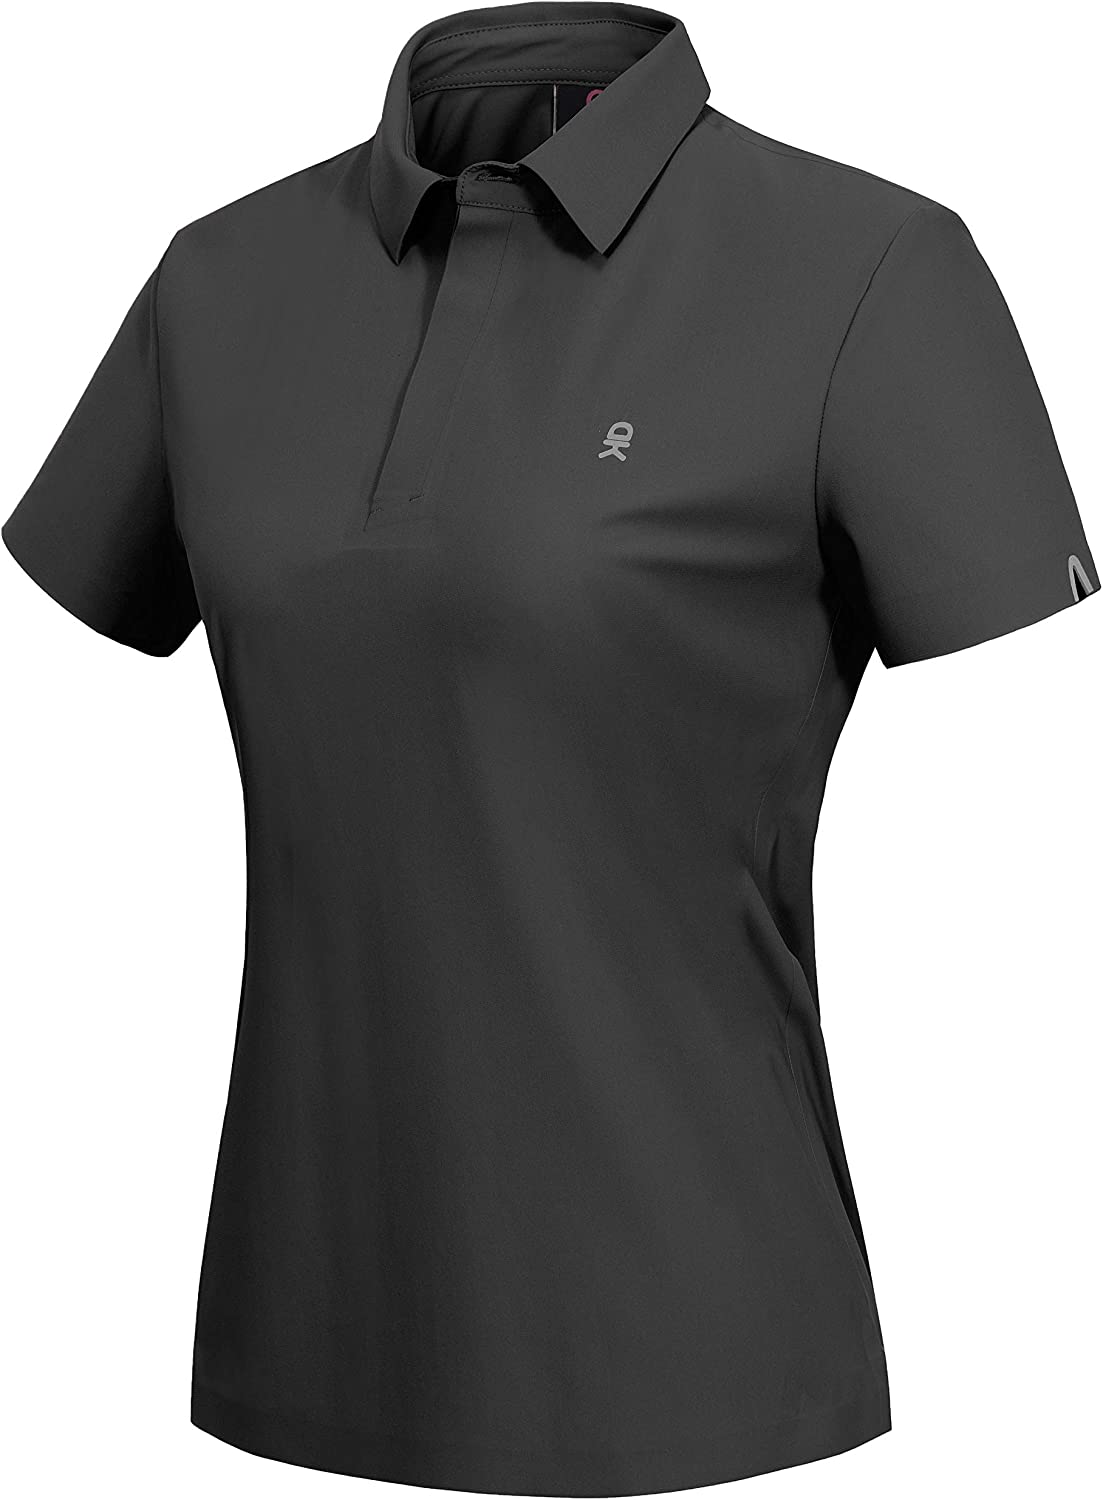 Little Donkey Andy Women's Stretch Short Sleeve Seamless Golf Polo Shirt with Laser Cuts, UPF 50, Quick Dry